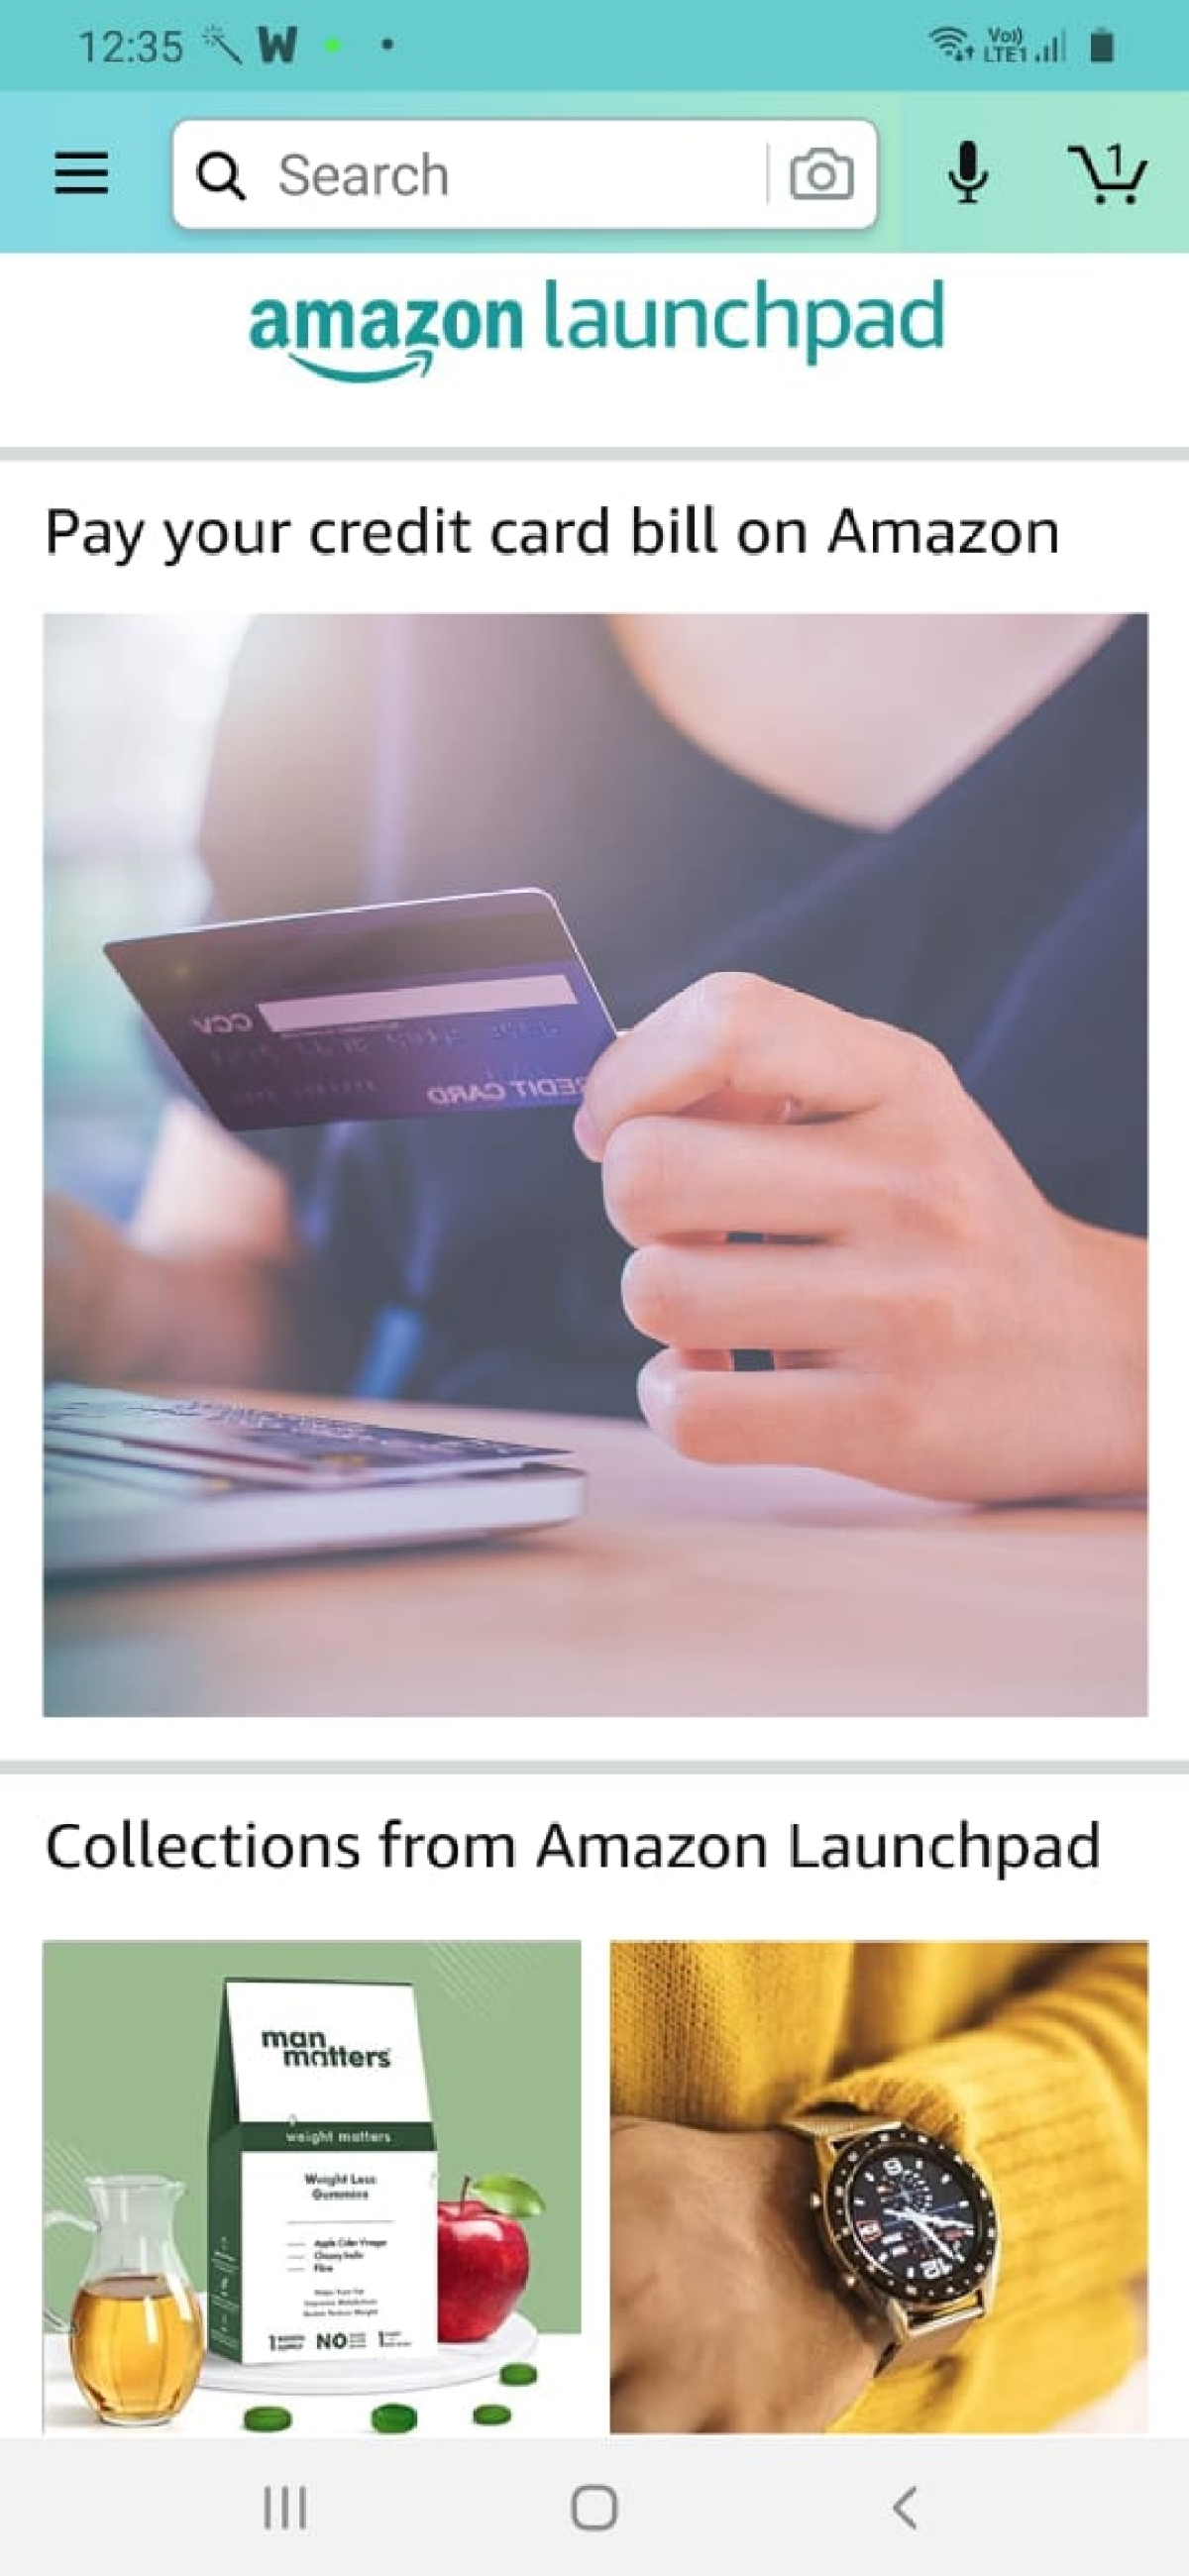 CRED, PhonePe, Paytm, Amazon... all platforms to pay your credit card bill on